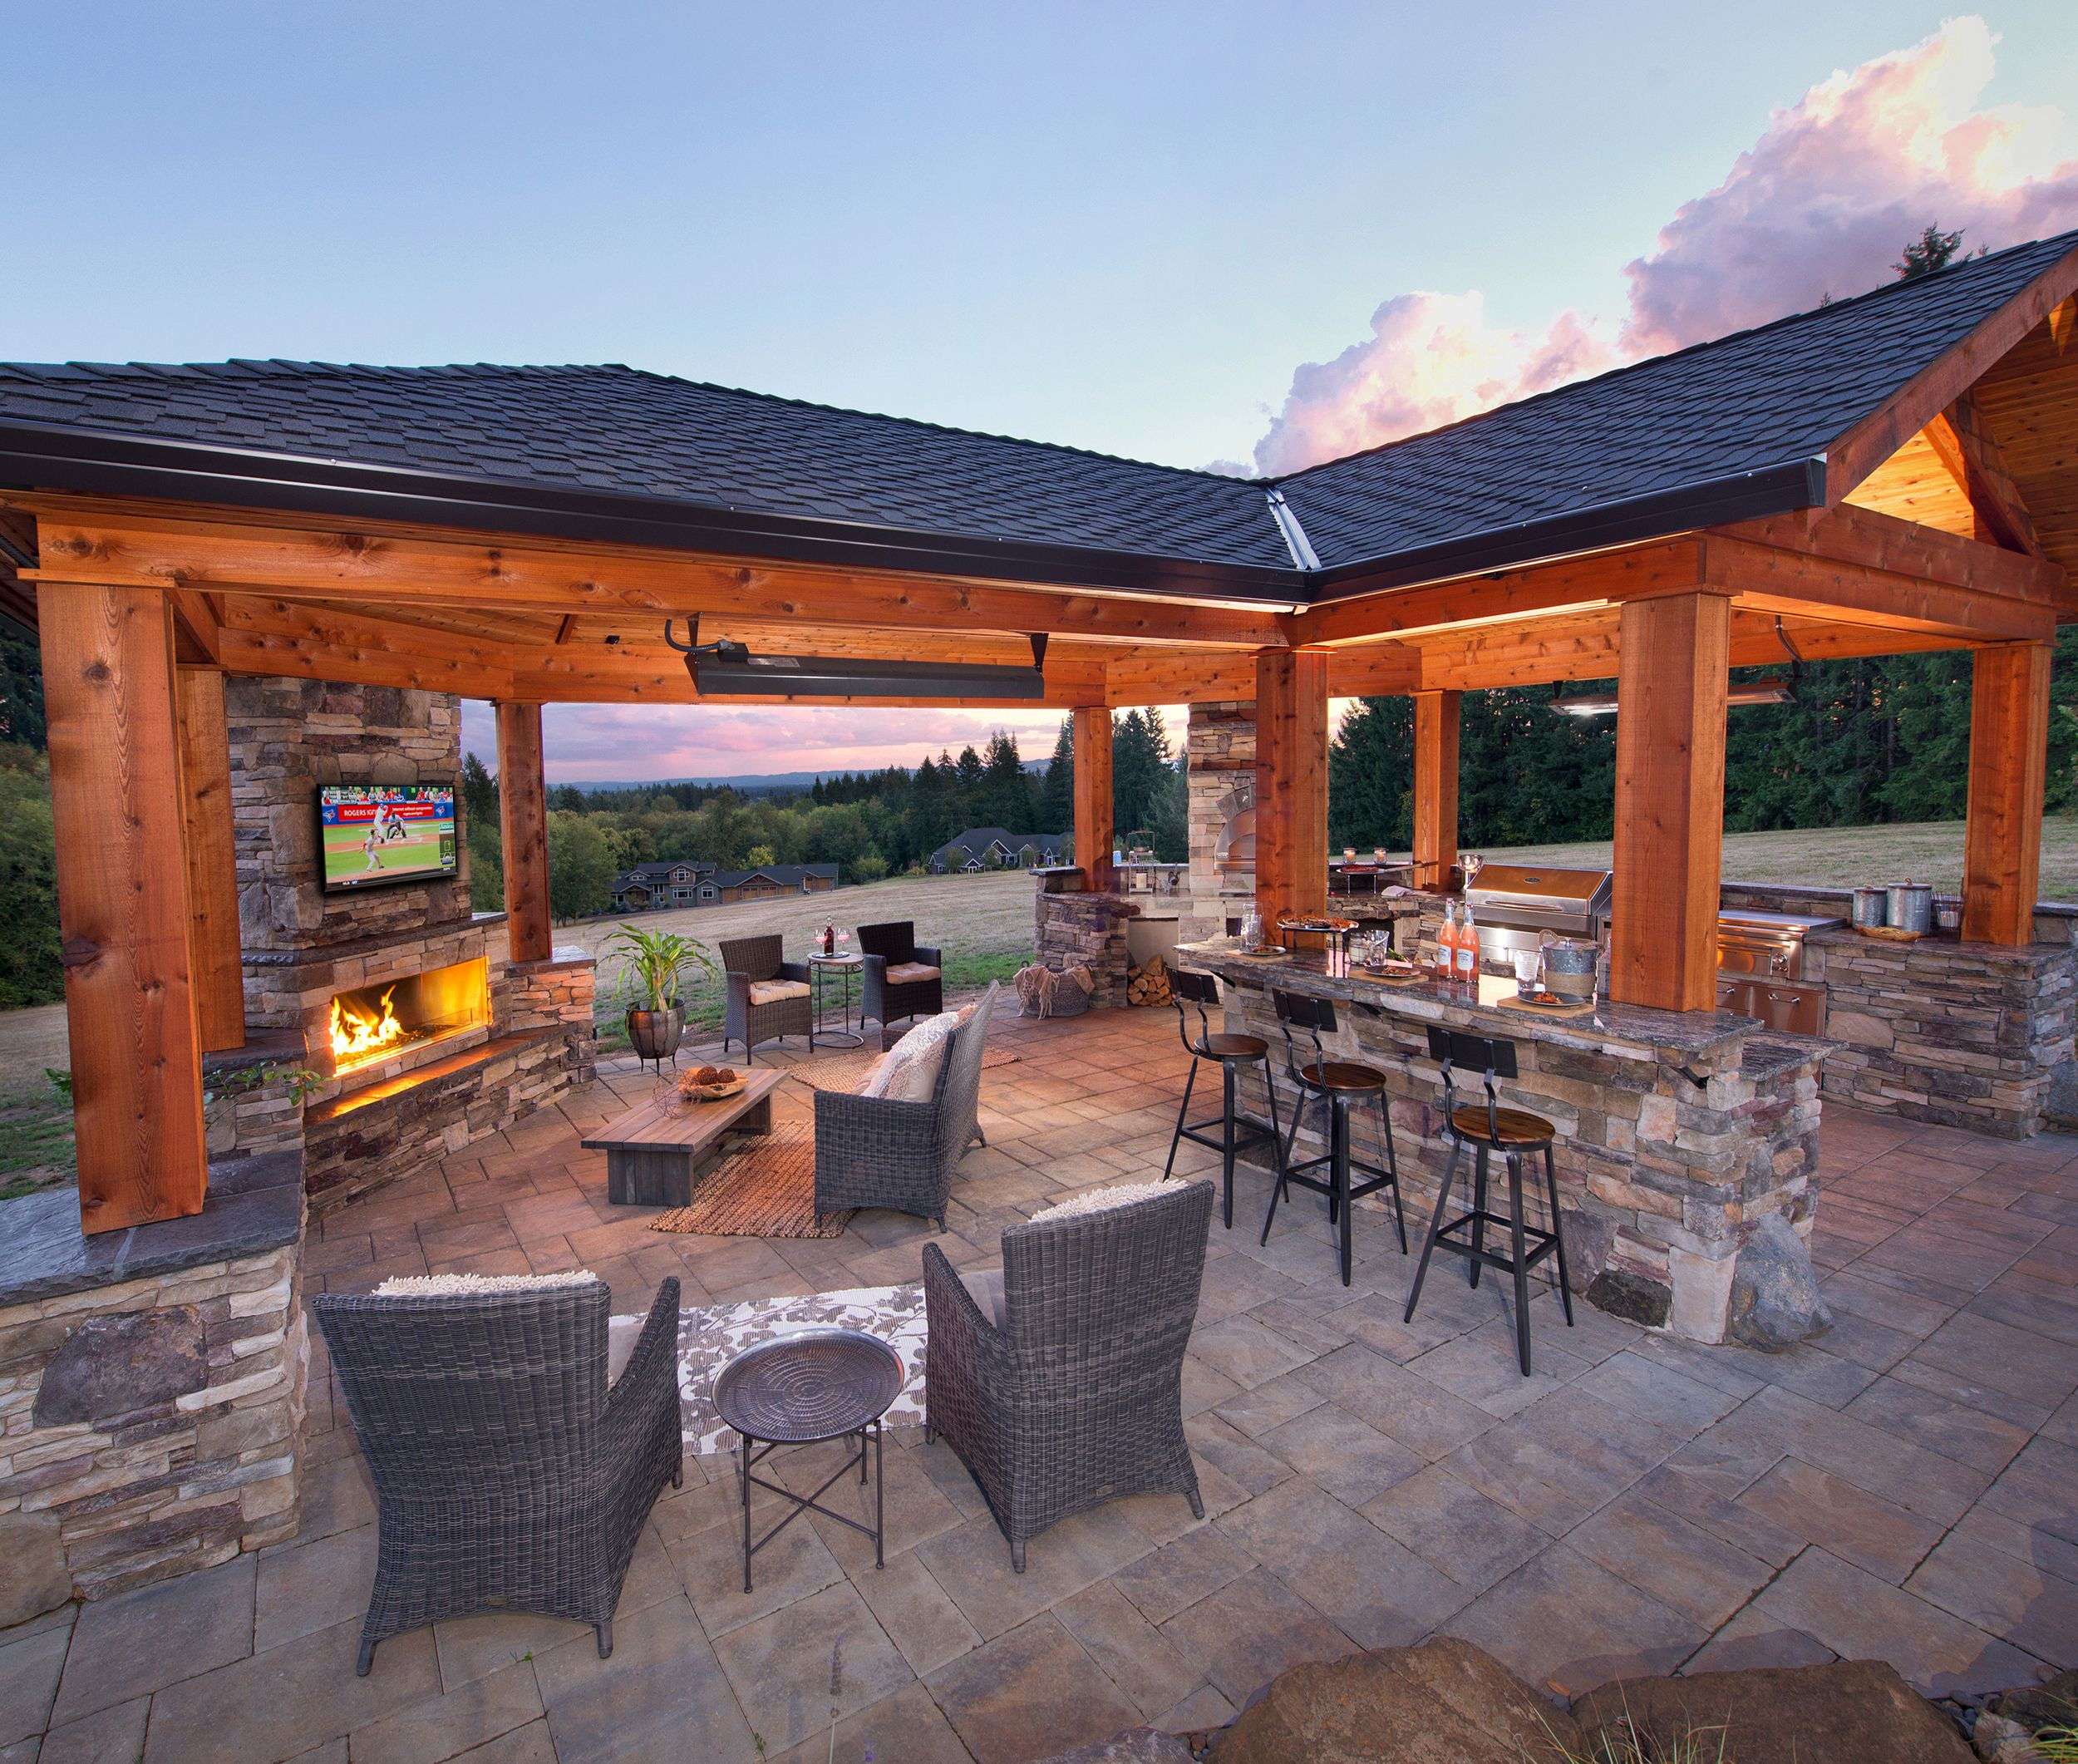 Gorgeous Outdoor Living Room & Kitchen, Pizza Oven